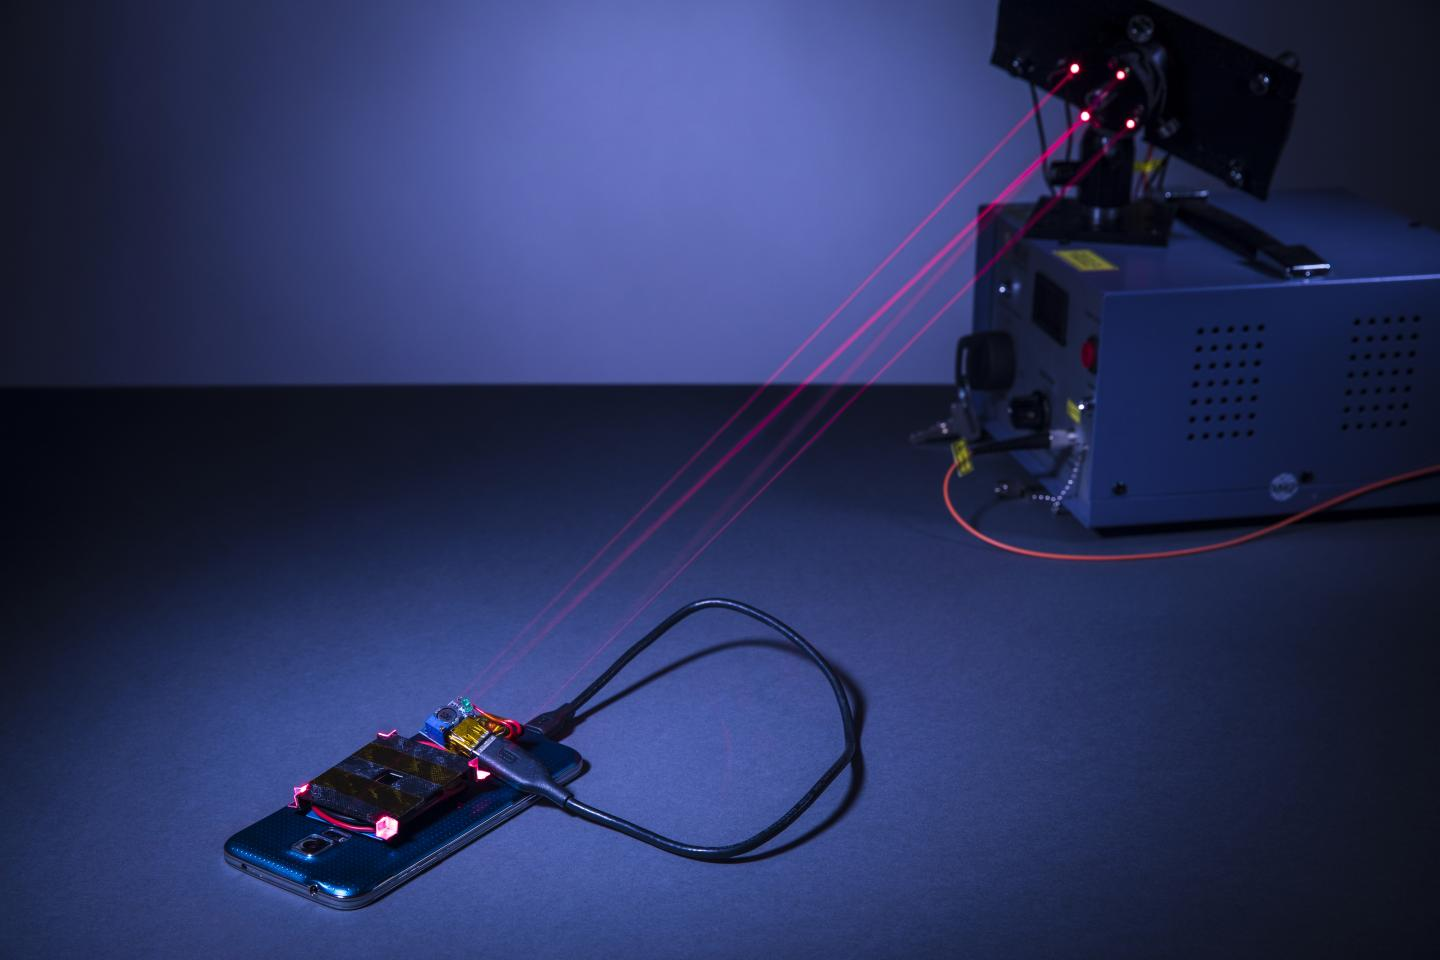 The wireless charging system created by University of Washington engineers. Source: Mark Stone/University of Washington